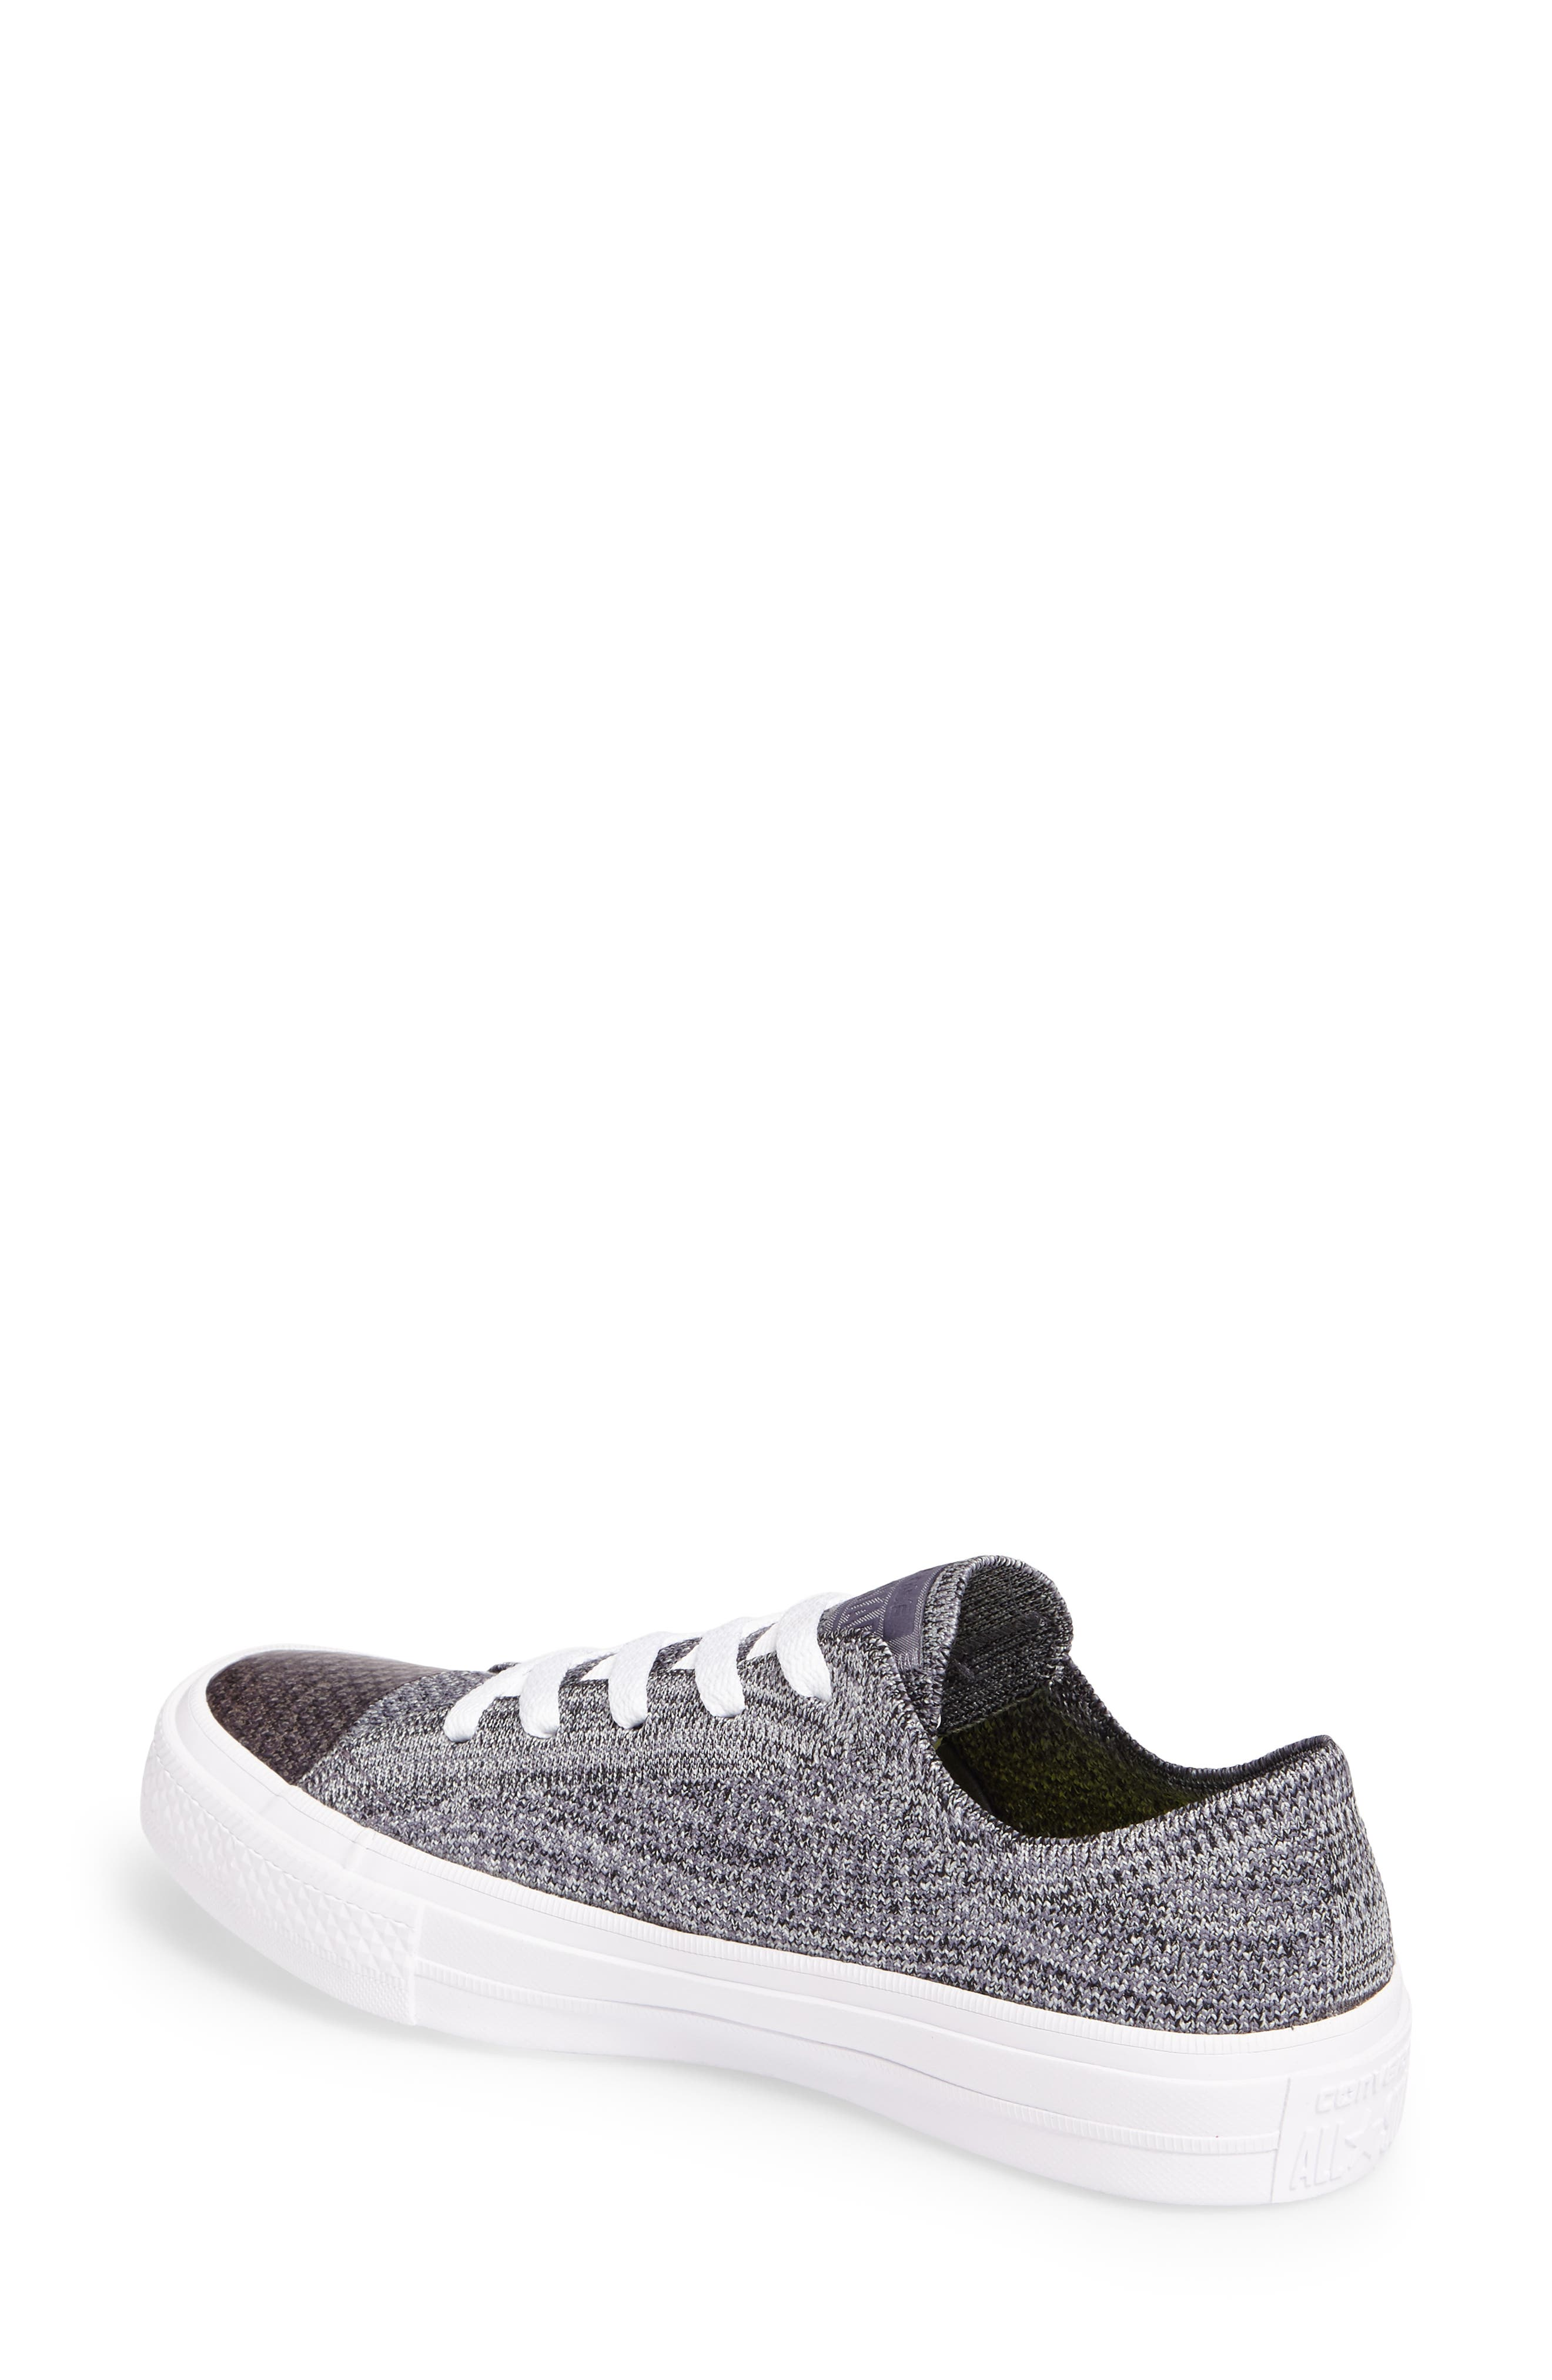 All Star<sup>®</sup> Flyknit Low Sneaker,                             Alternate thumbnail 2, color,                             Thunder Flyknit